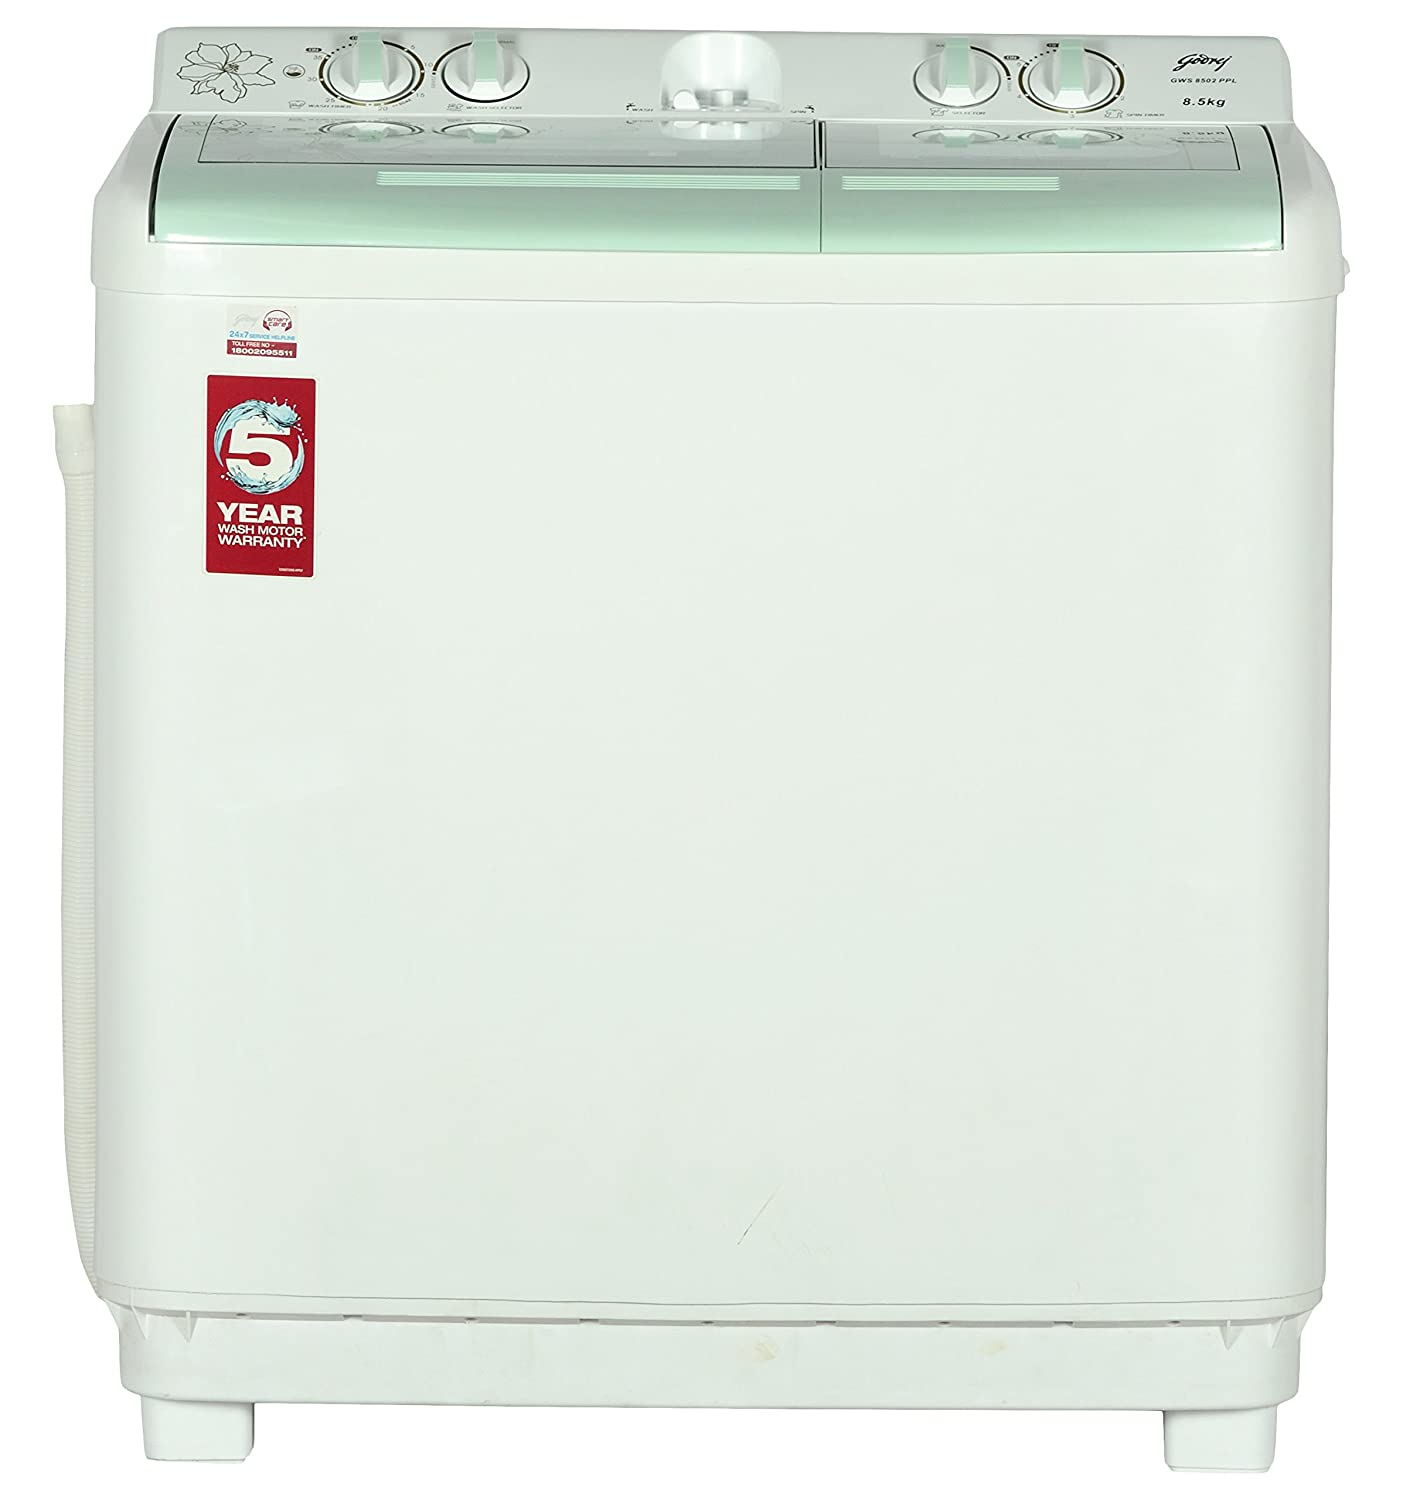 Godrej 8.5Kg Semi Automatic Washing Machine GWS8502 PPL Image